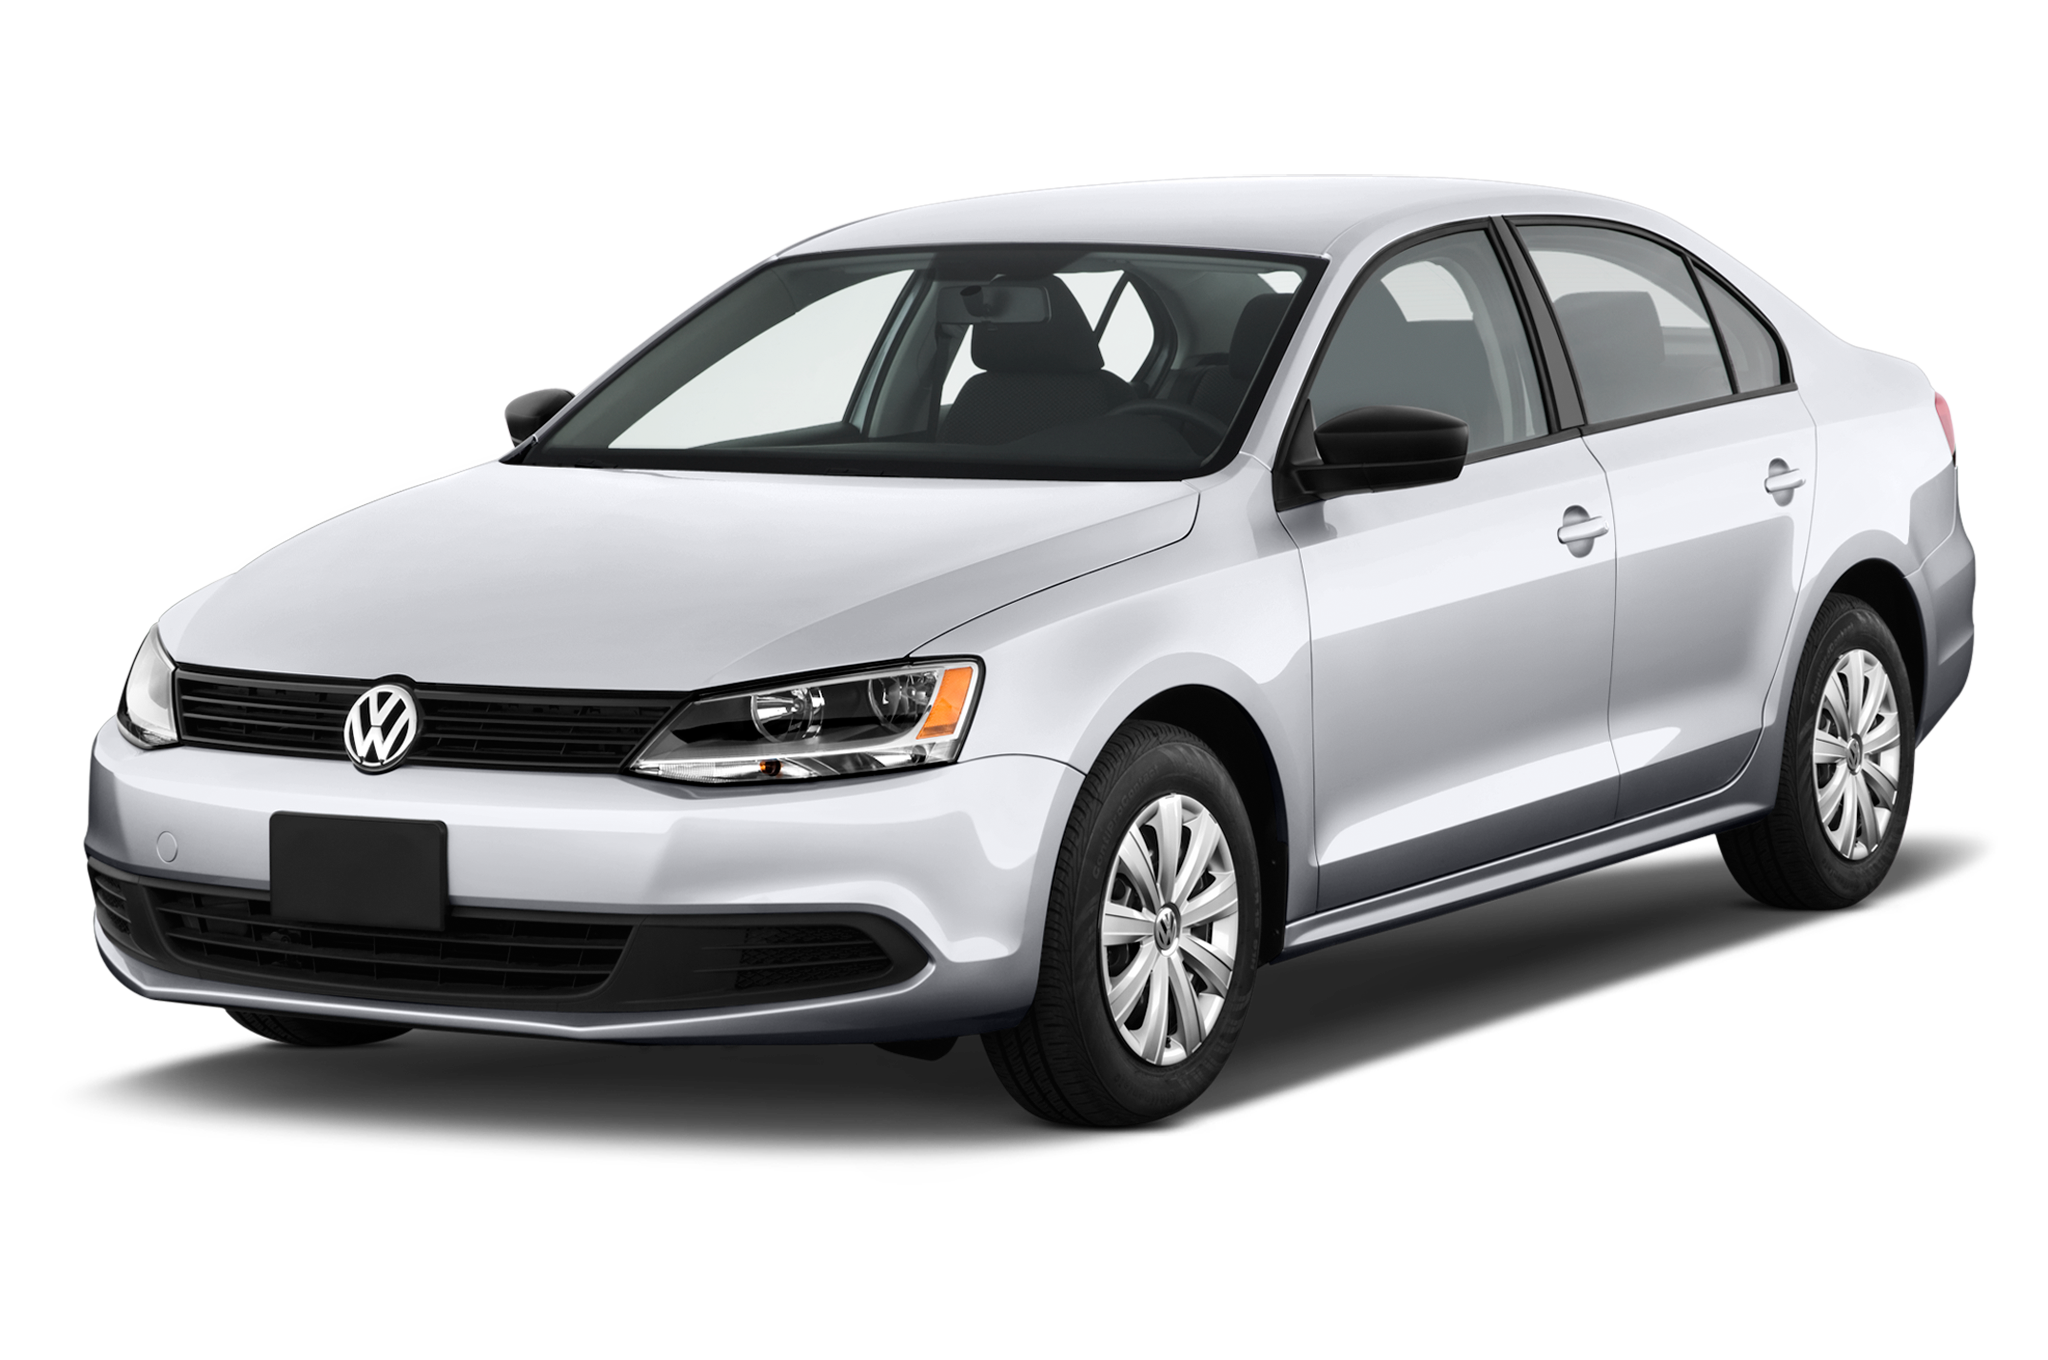 detroit 2012 volkswagen unveils 2013 jetta hybrid with up to 45 mpg. Black Bedroom Furniture Sets. Home Design Ideas